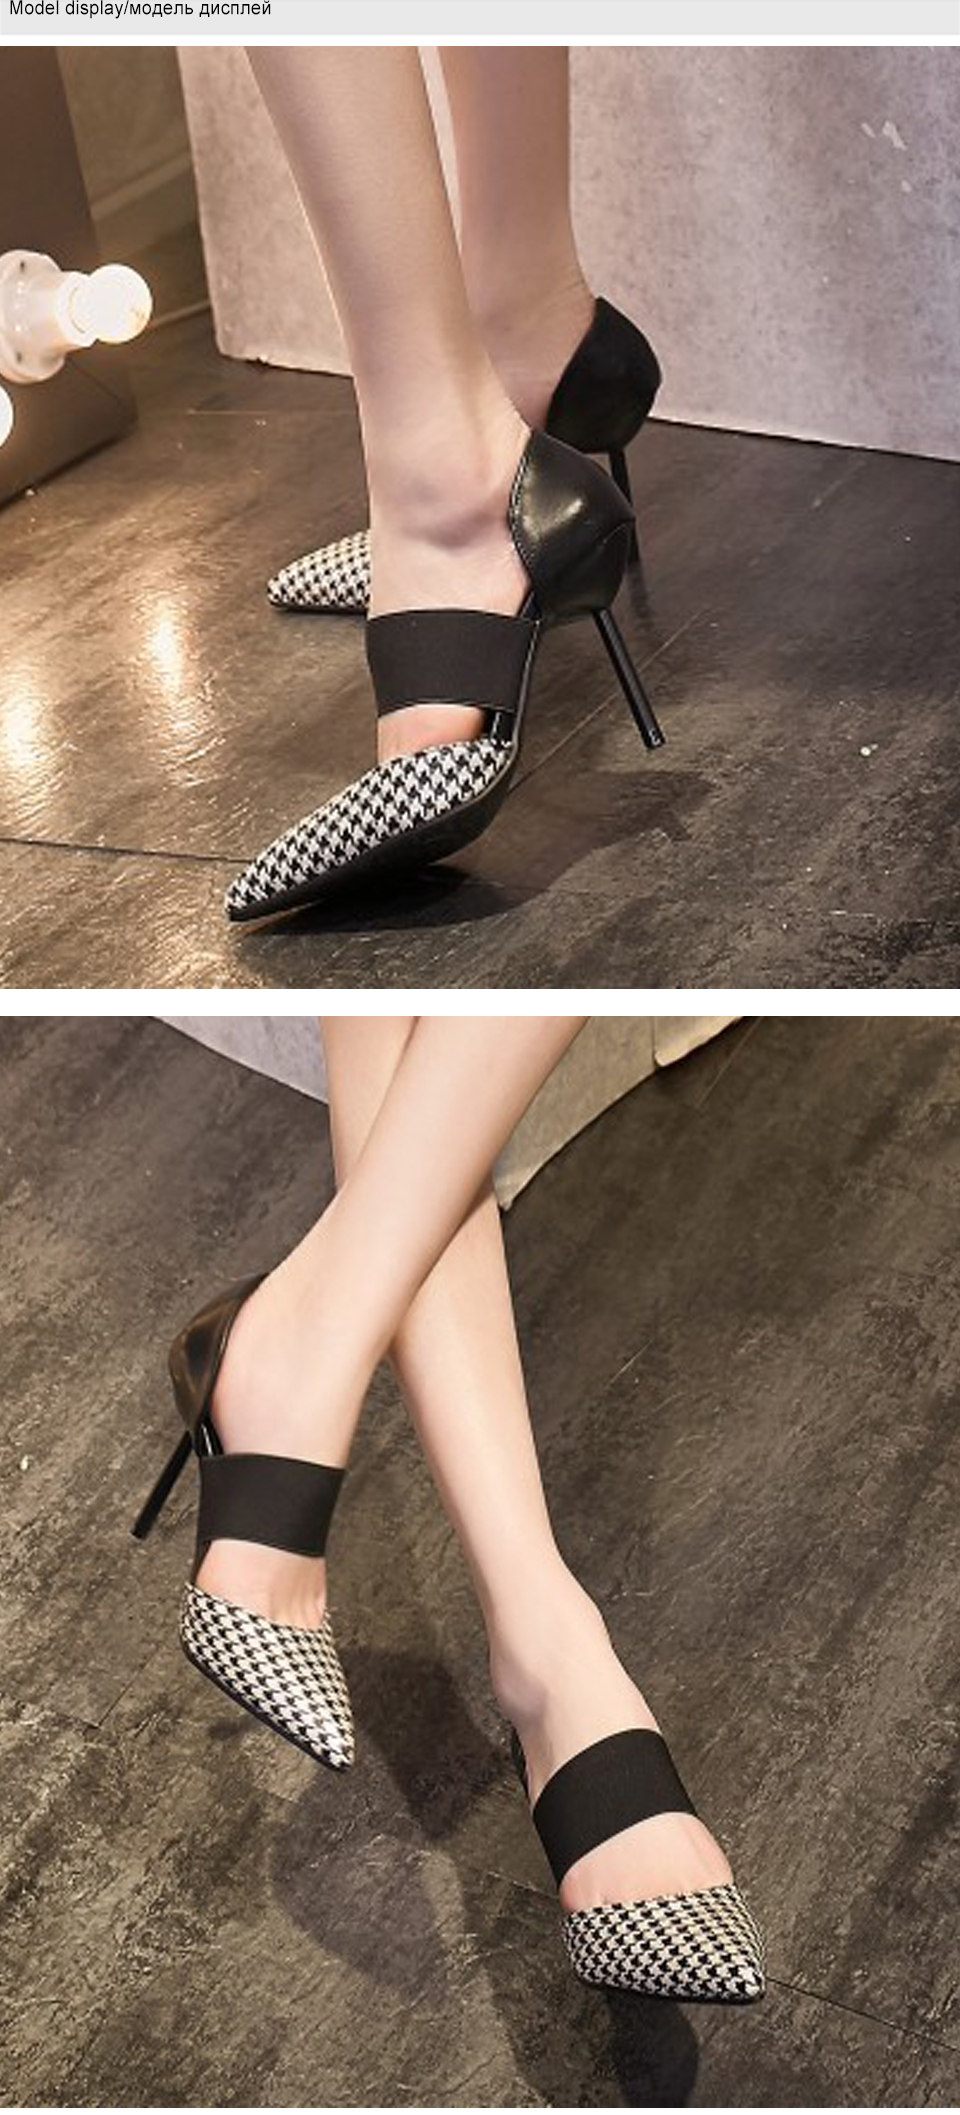 Women Shoes High Heels Brand Woman Pumps Spring Pointed Toe Black Ladies Dress Shoes Heels Women Party Shoes Chaussure Femme DE 6